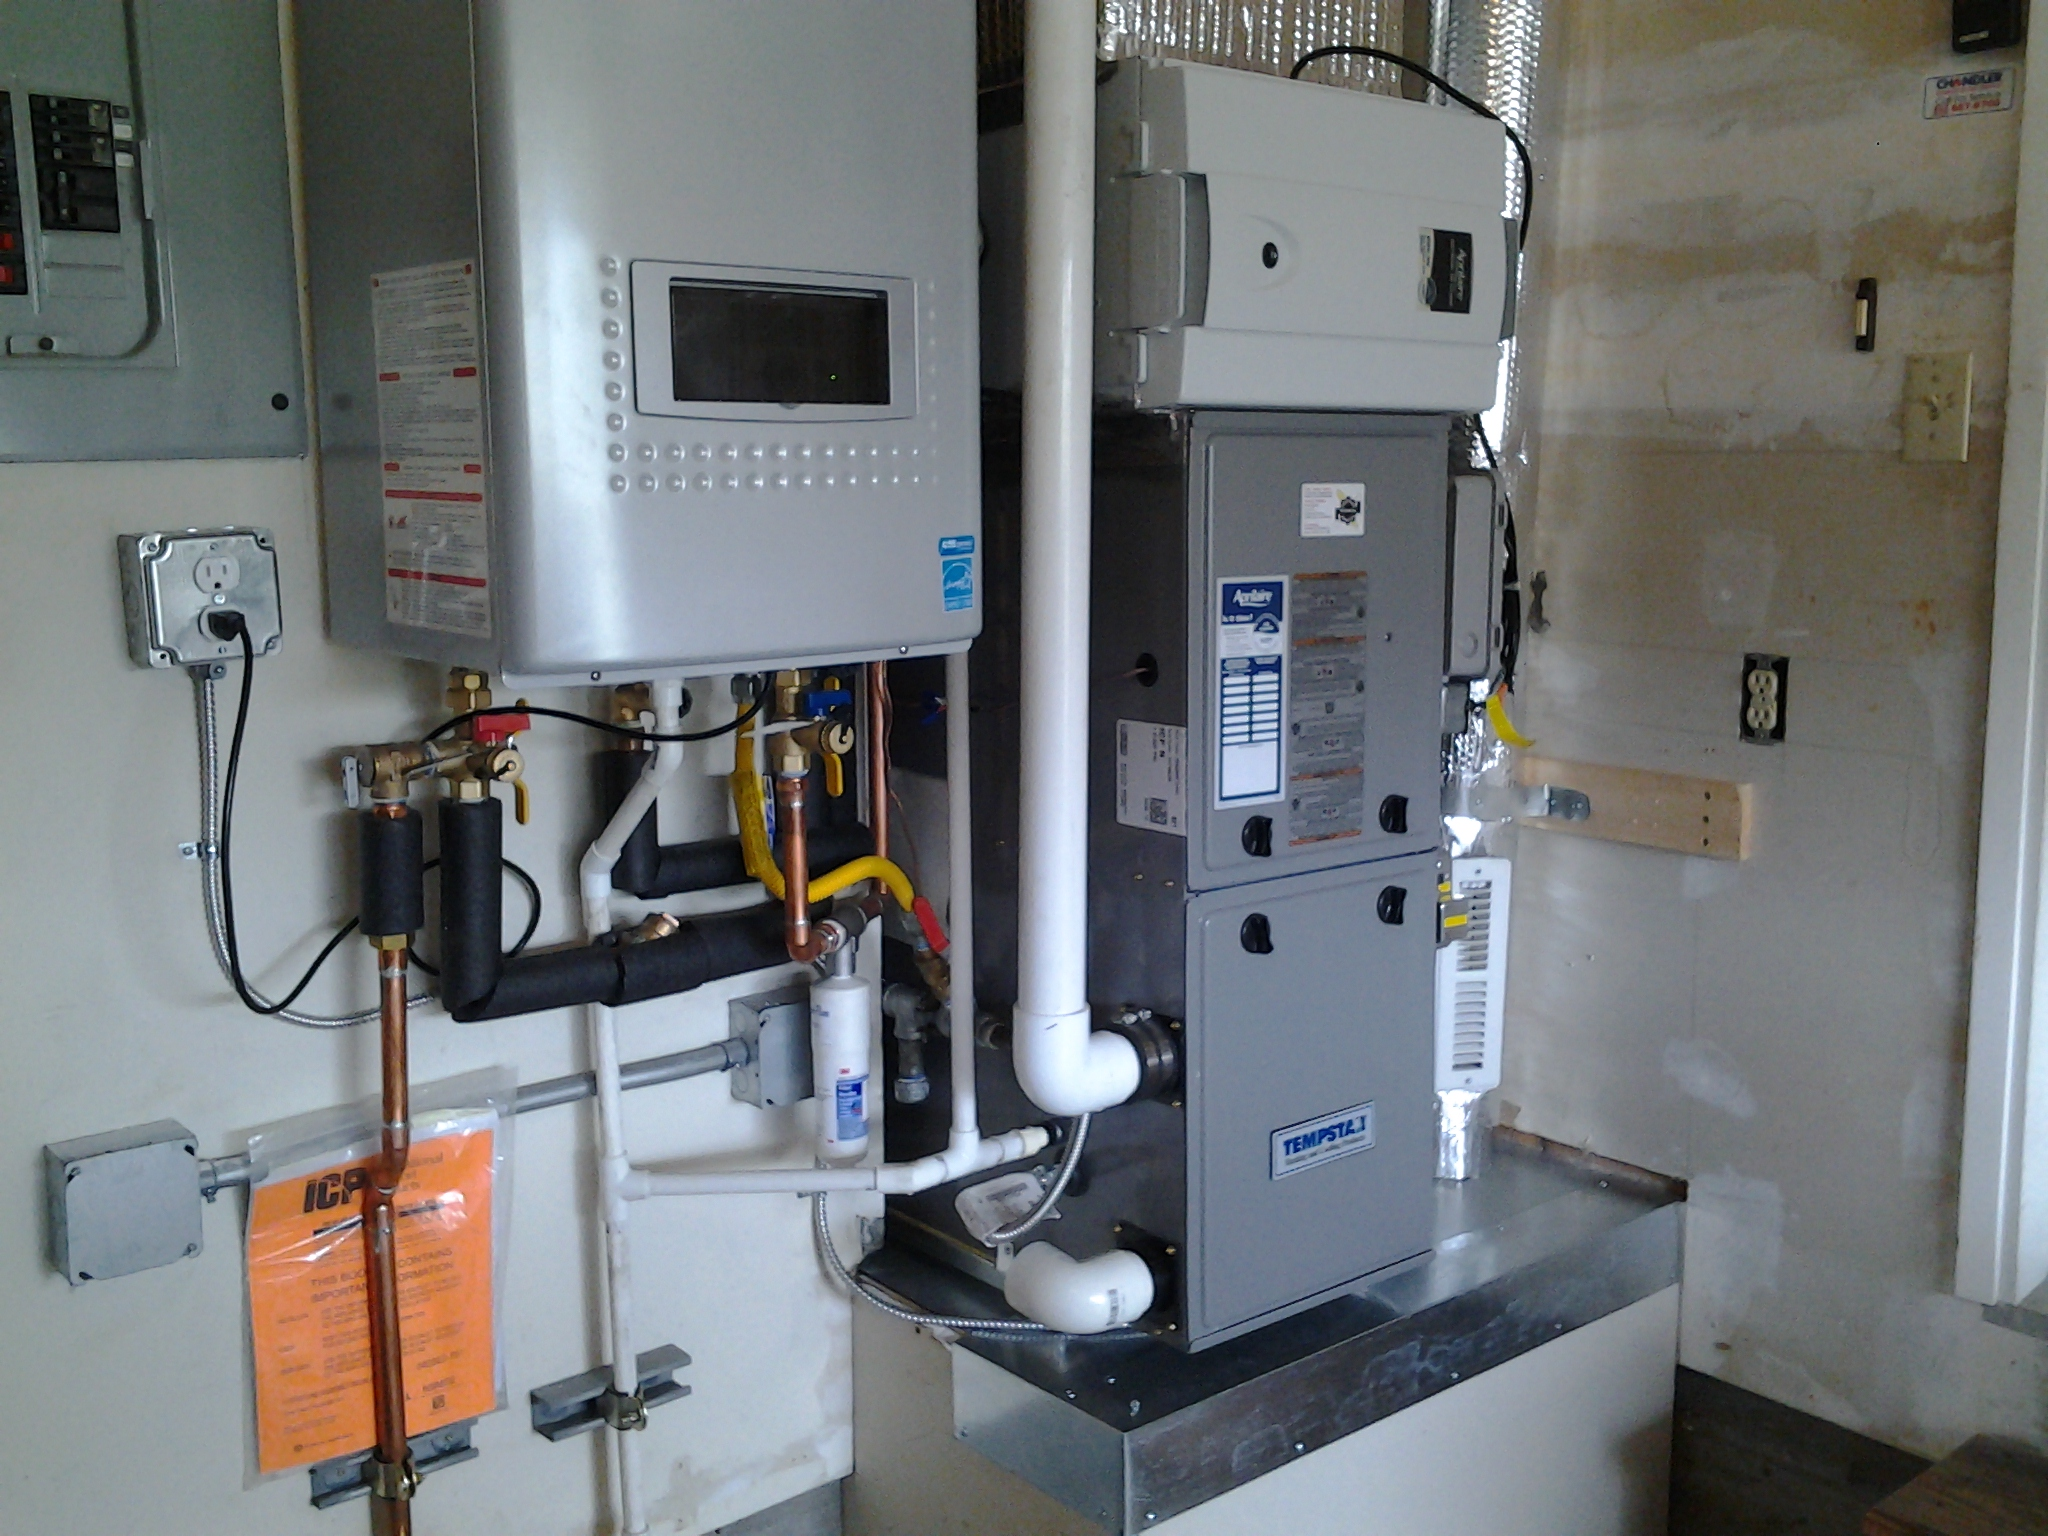 april air-high efficiency tankless water heater and high efficiency furnace with electronic air filter.jpg